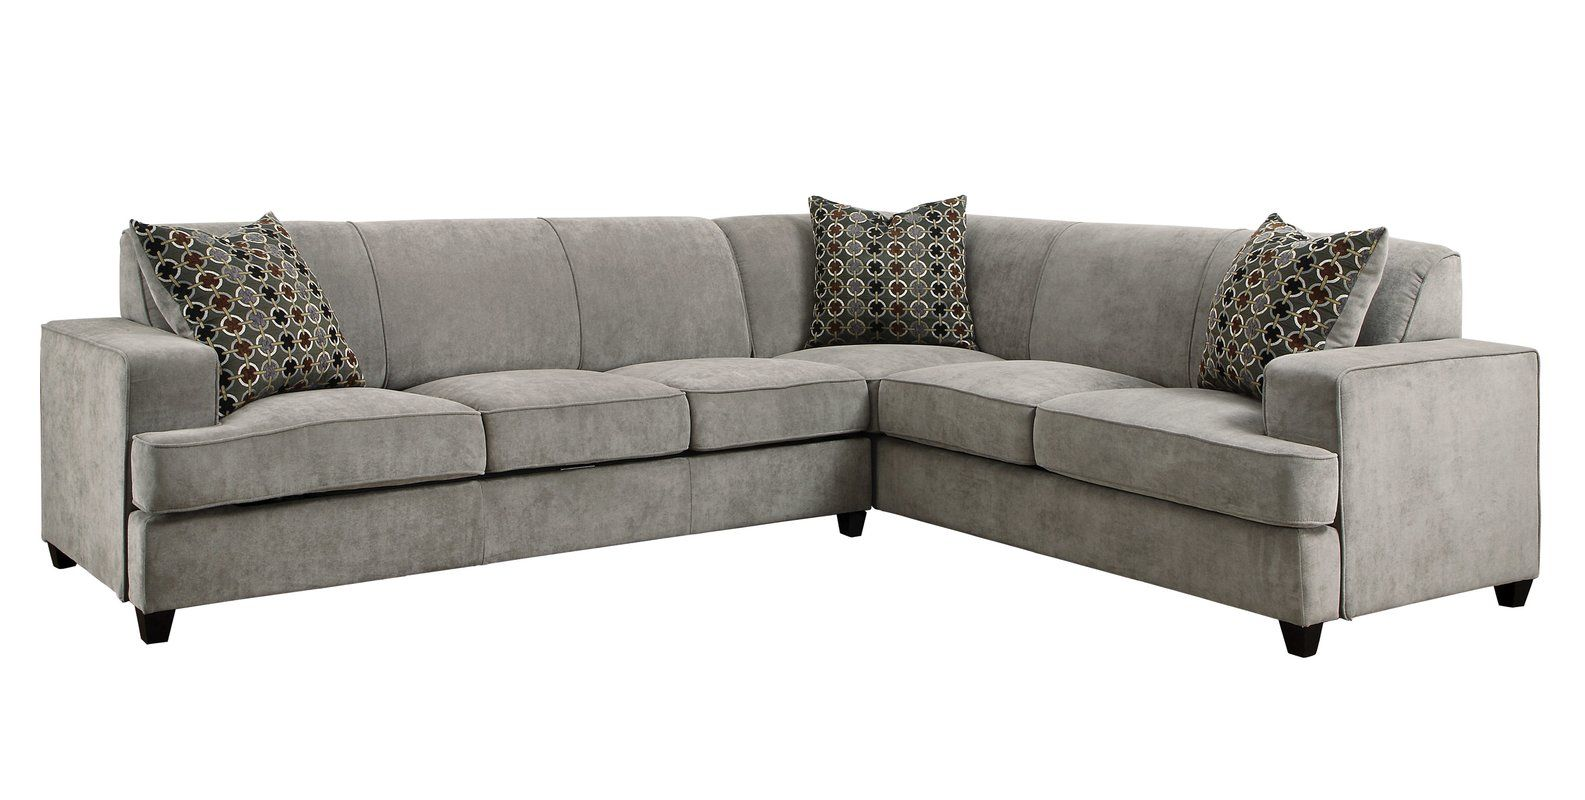 Caswell 114 Right Hand Facing Sleeper Sectional Sectional Sleeper Sofa Grey Sectional Sofa Corner Sectional Sofa